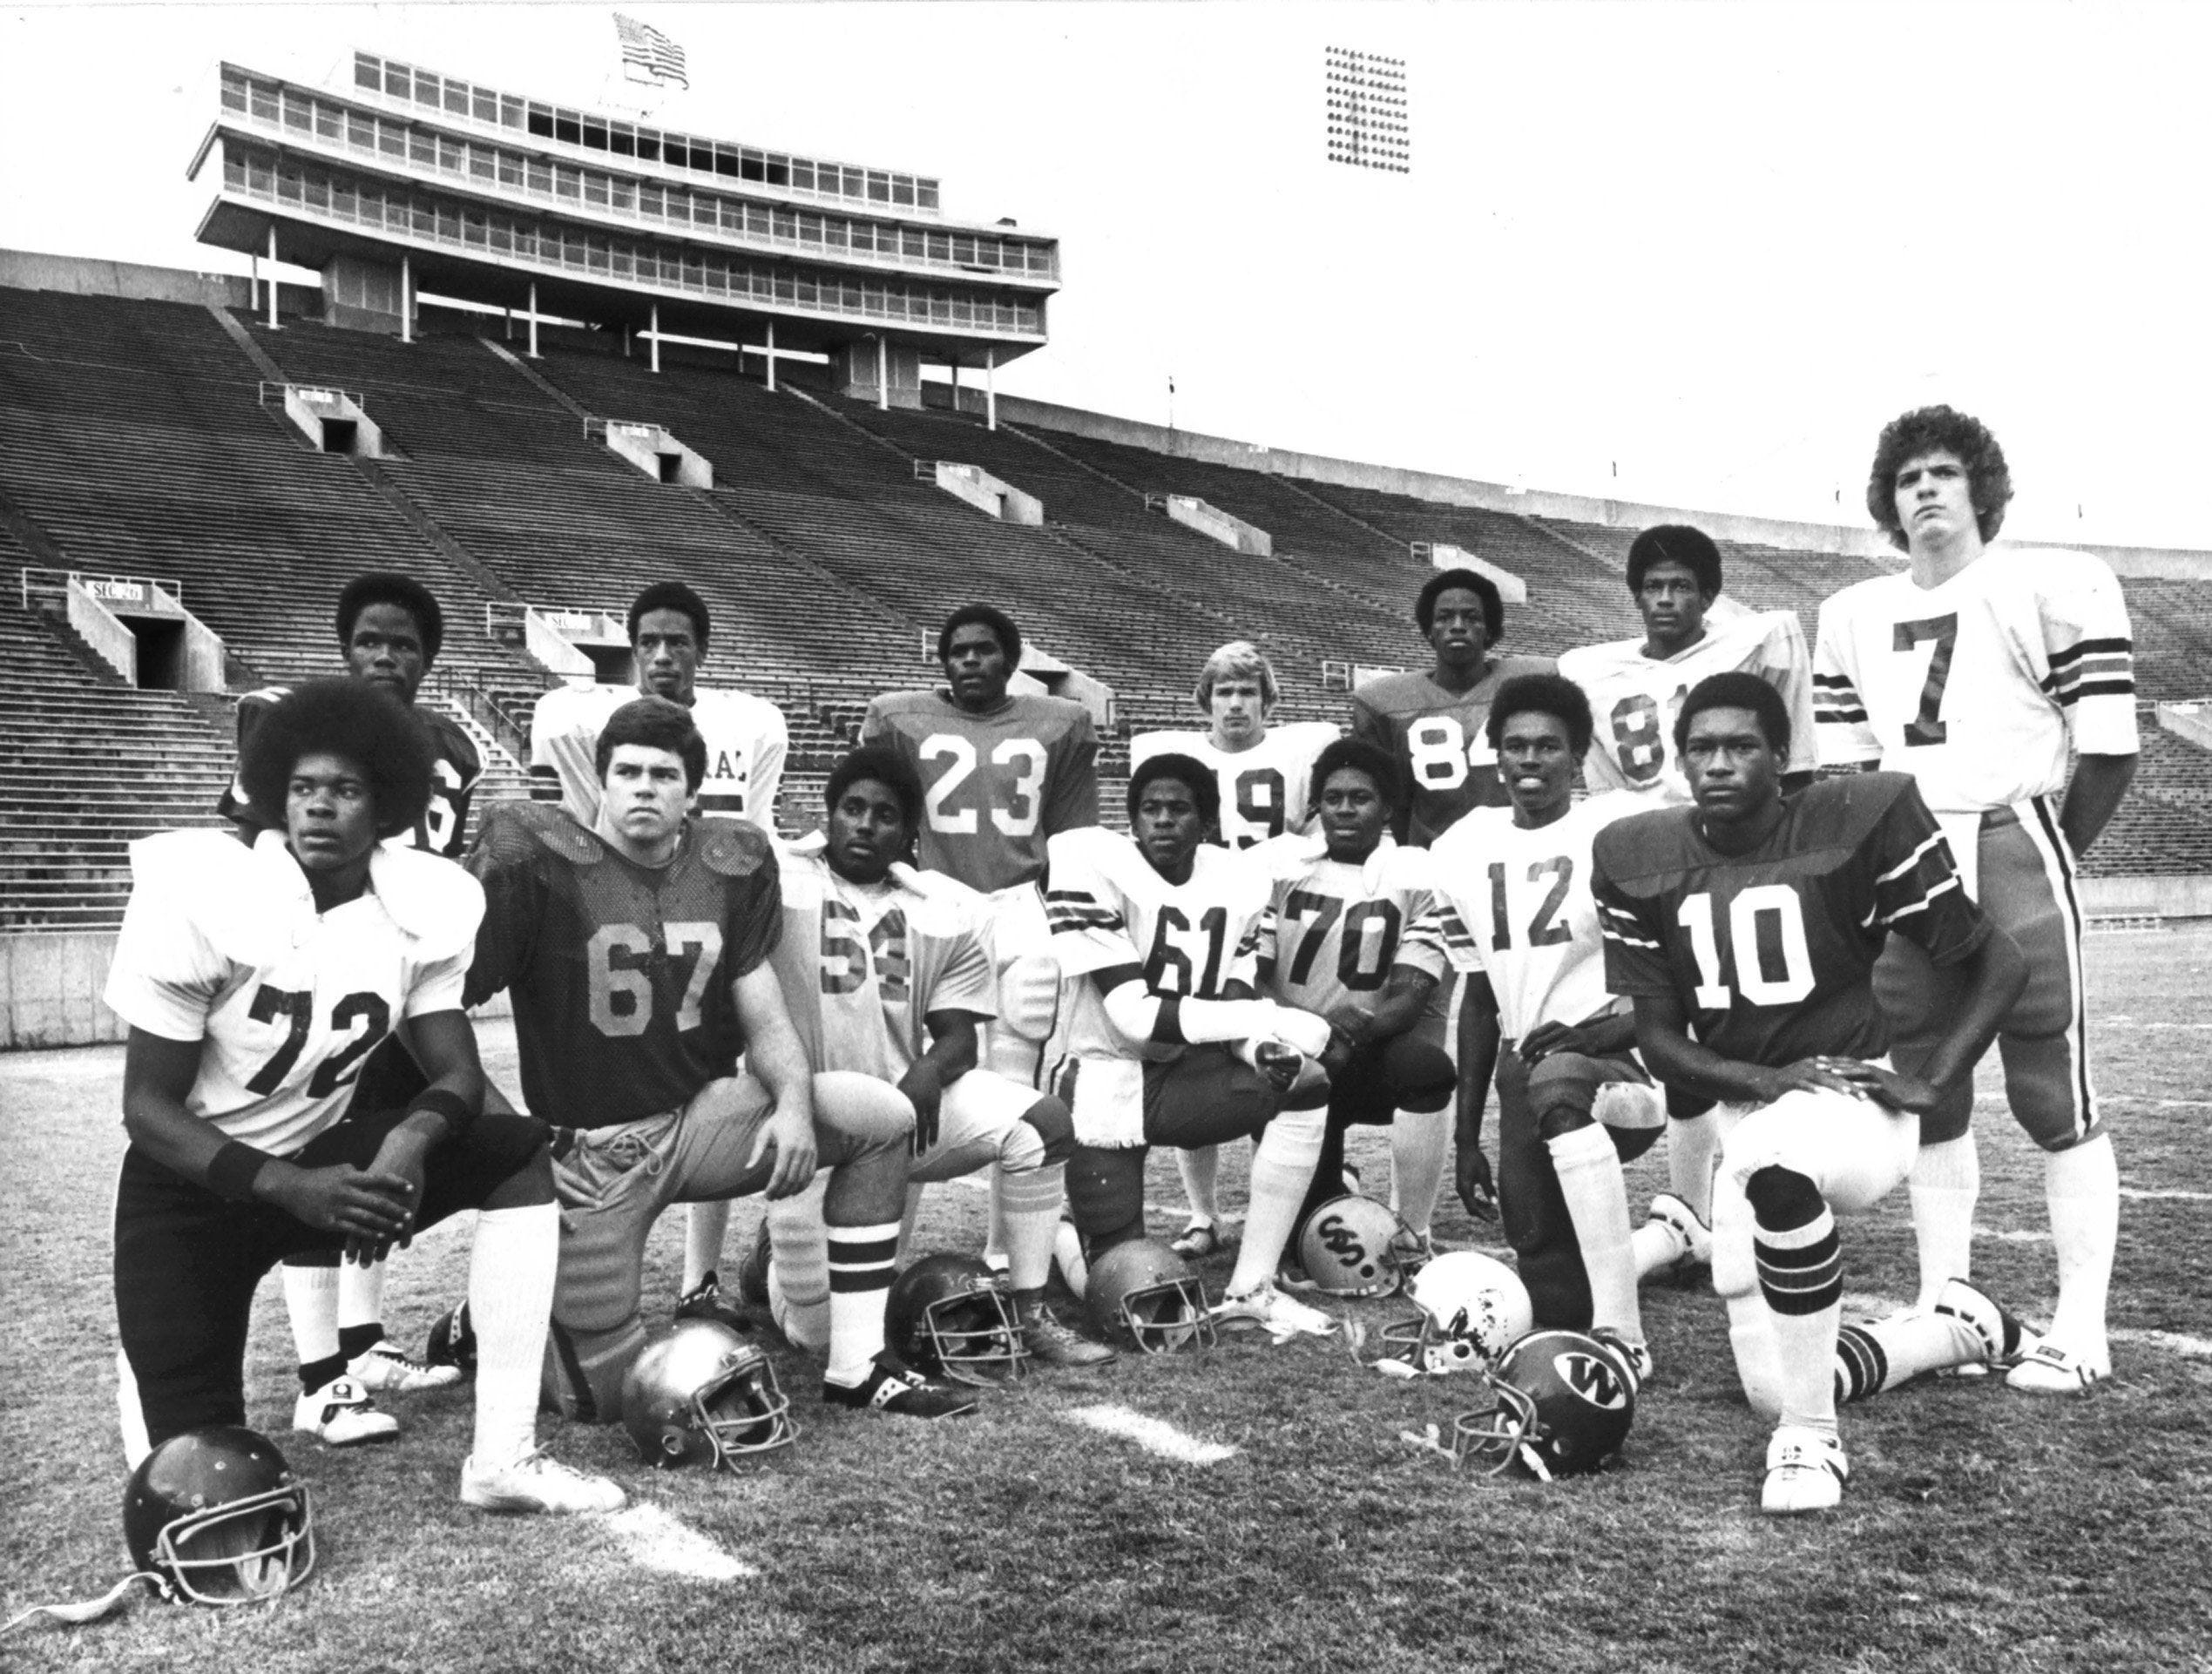 The All MIAA Offensive team, as pictured in Nov 1978 at Memphis Memorial Stadium includes: (Front Row From Left): Ernest Robinson, Mitchell; Tom Dorian, CBHS; Ivan Bowen, Westwood; Johnny Walker, Ridgeway; Robert Cole, South Side; Winston Ford, Carver and Orlando Brown, Westside. (Back Row From Left): Jeff Ware, Douglass; Johnny Collins, Central; Alonzo Bolden, Hamilton; Ricky Meadows, Ridgeway; Terry Moore, Treadwell; Nathan Cole, Westwood and Stan Weaver, Ridgeway.